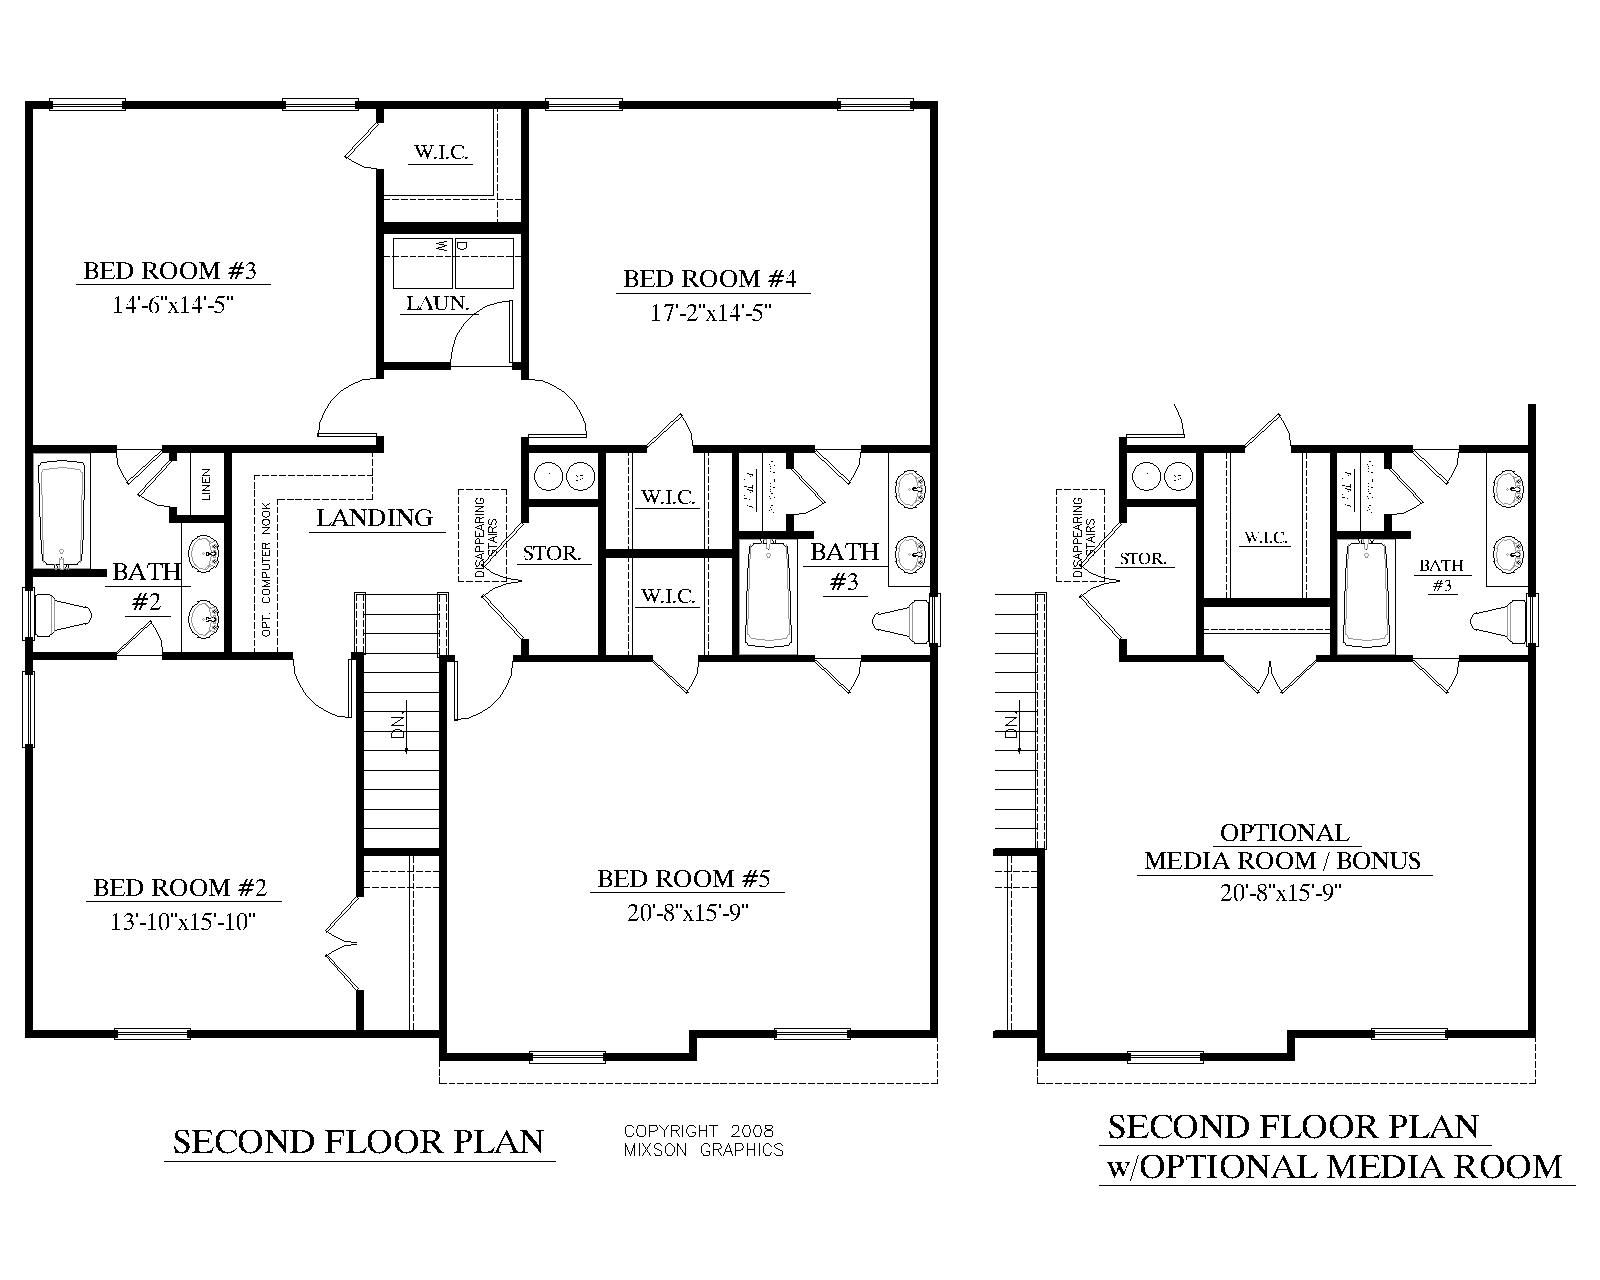 House plan 2691 a mccormick 2nd floor plan 2691 square feet 39 39 0 wide by 42 39 0 deep 5 - Story bedroom house plans pict ...